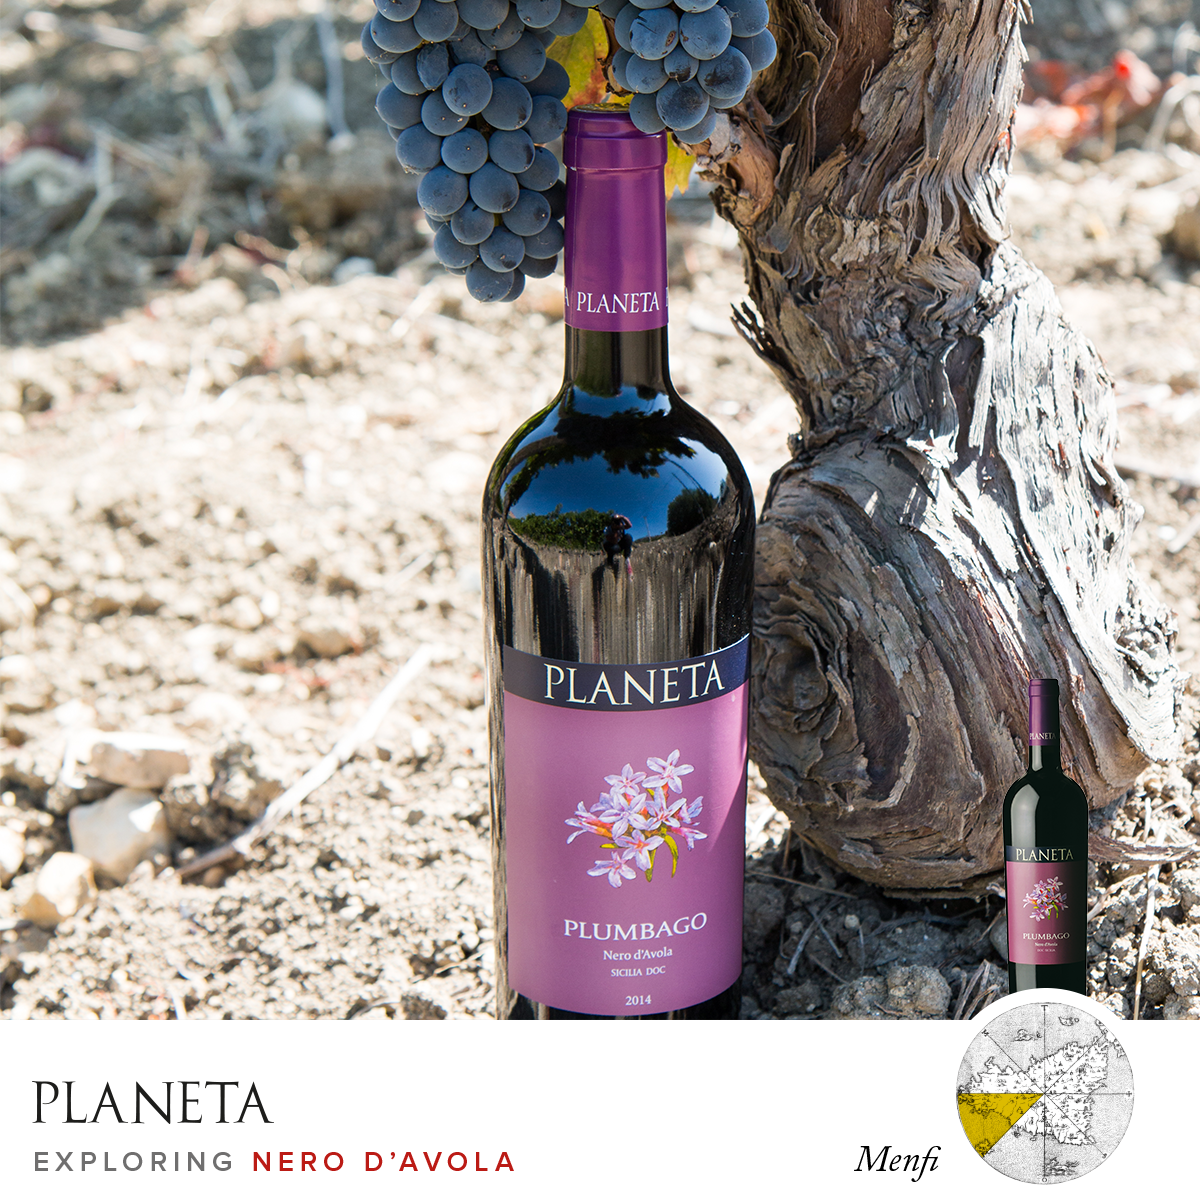 From Menfi, the Nero d'Avola for the Plumbago